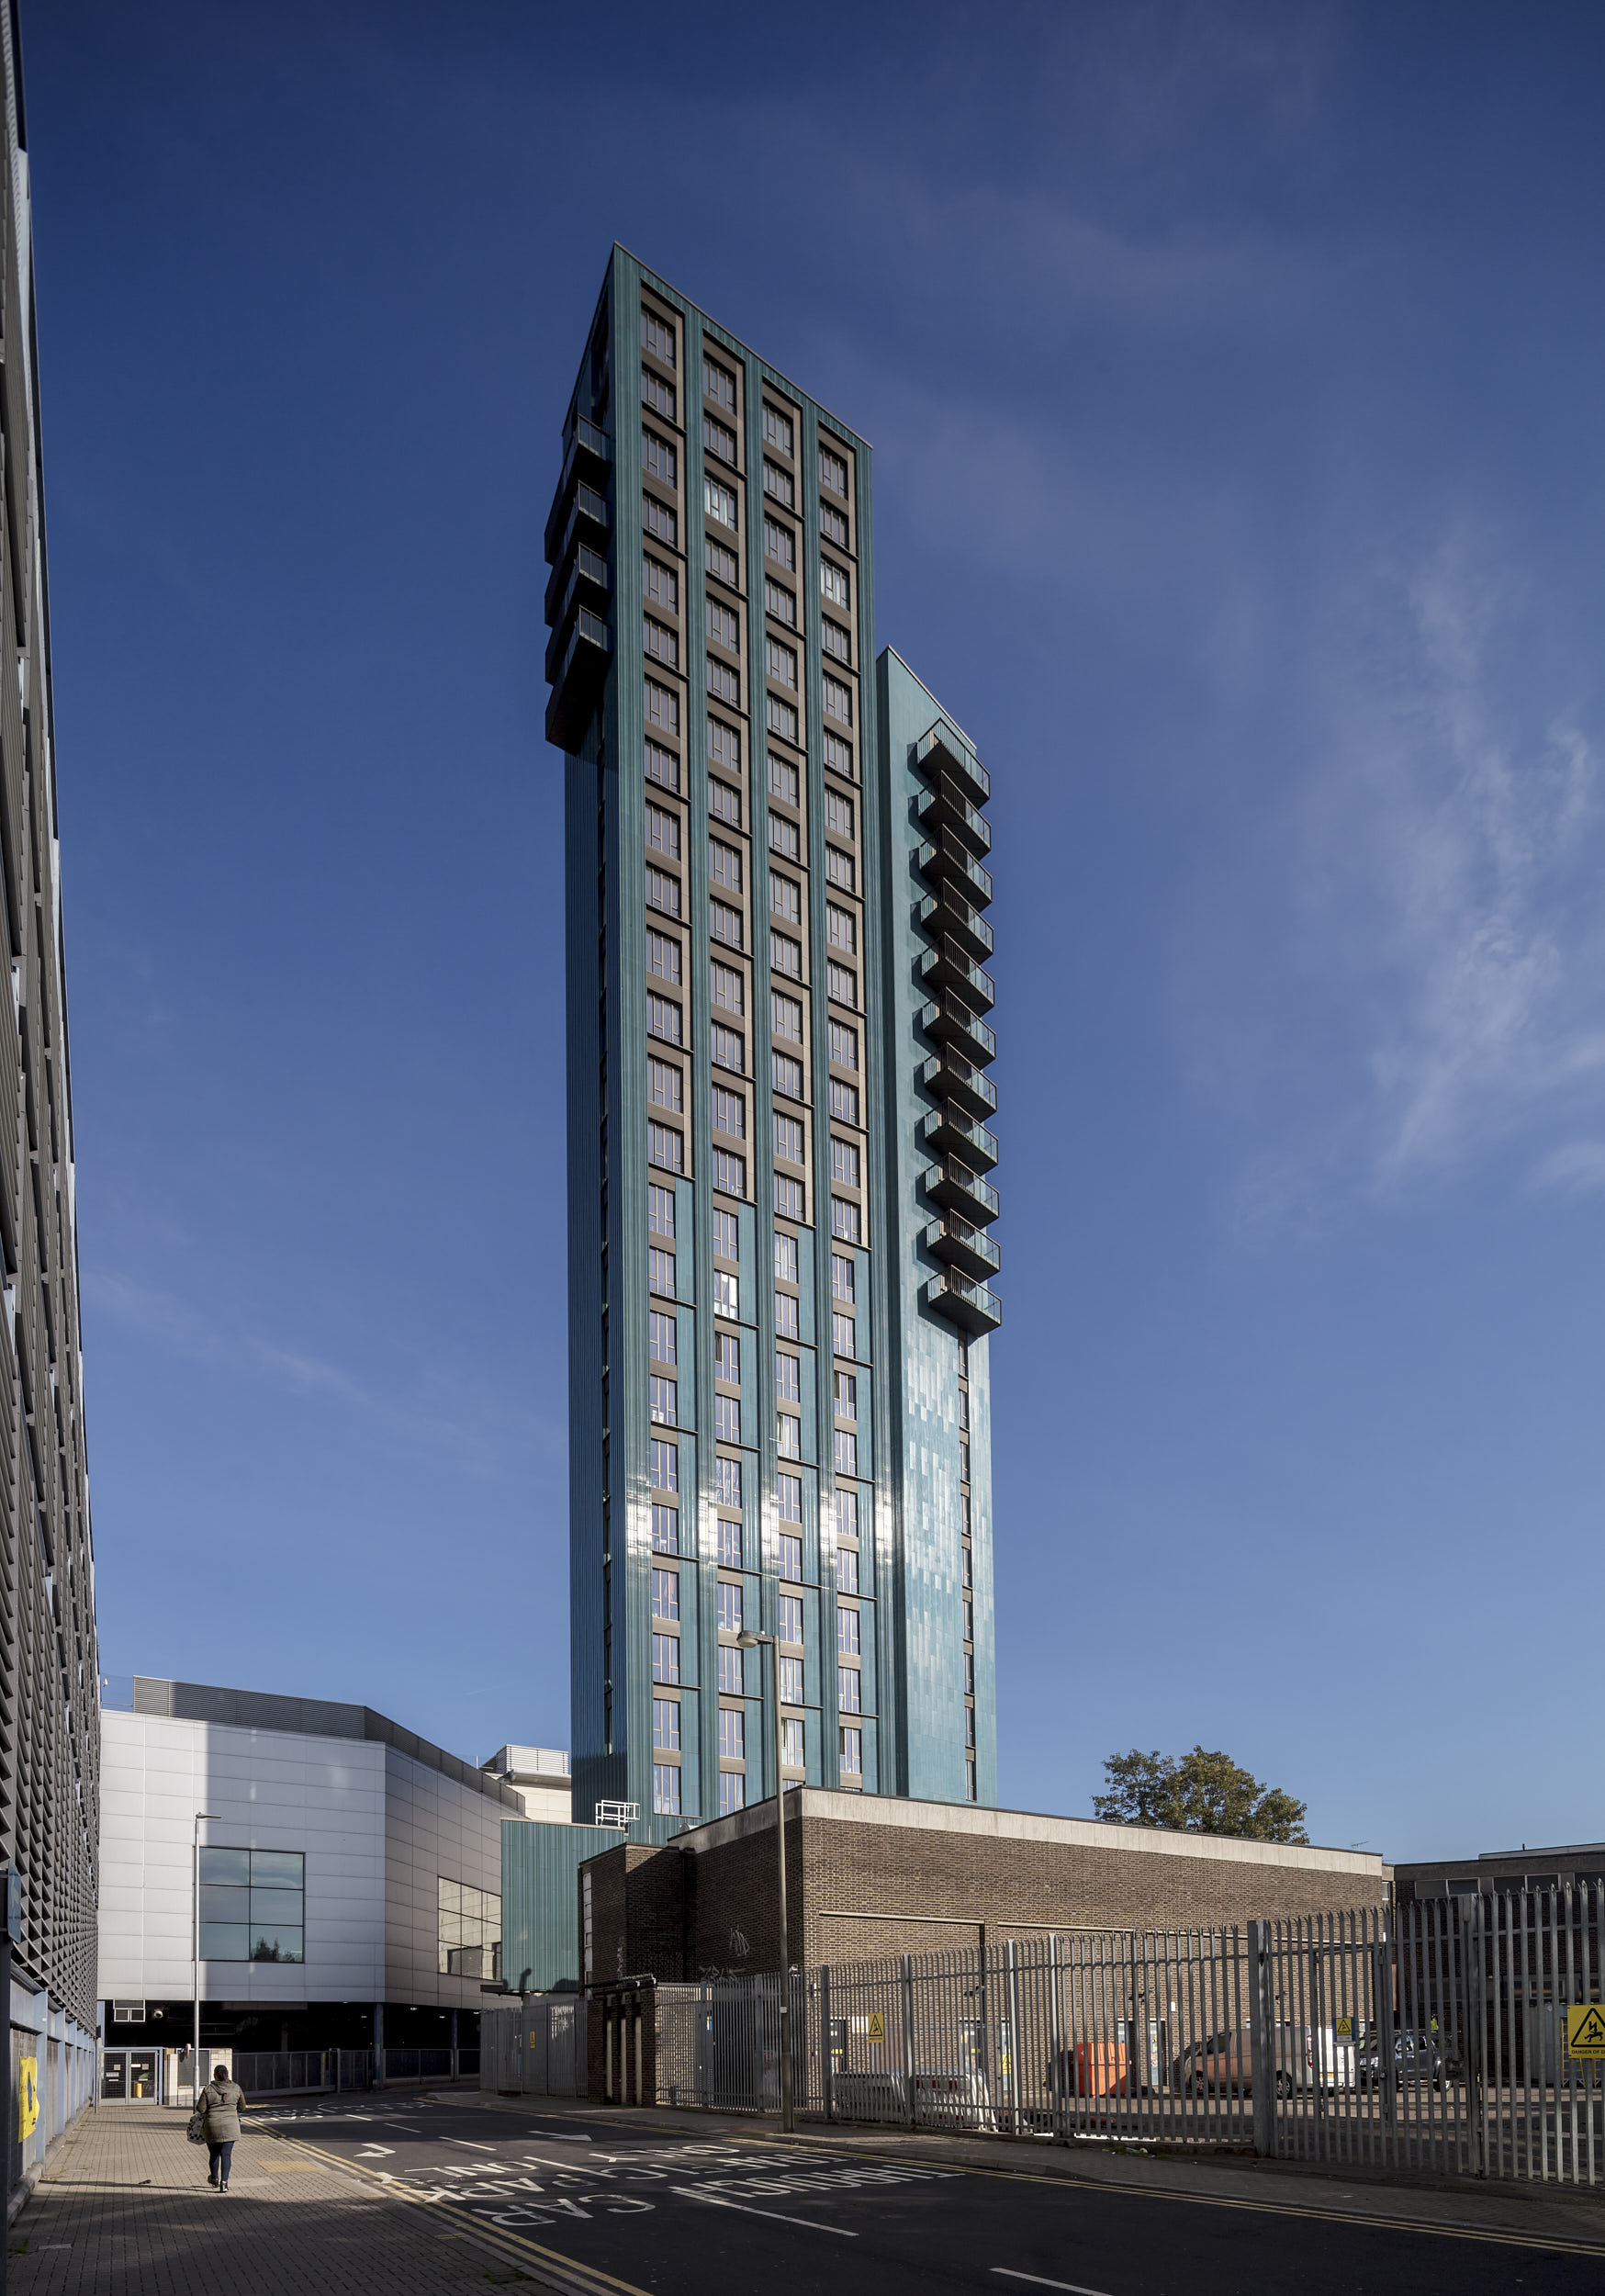 Tower design is by London-based architects Metropolitan Workshop.